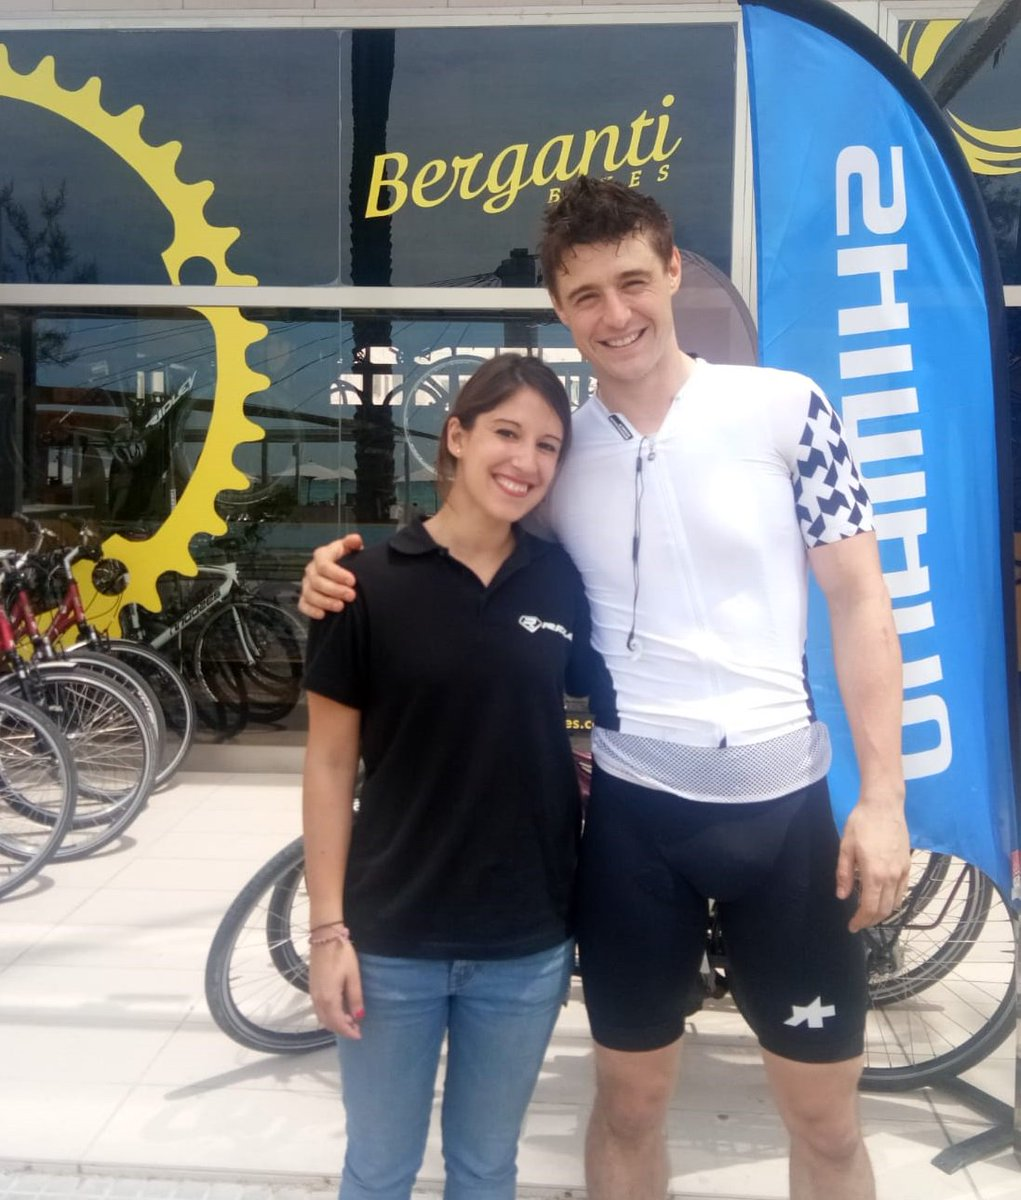 Berganti Bikes On Twitter We Have Something In Common With Big